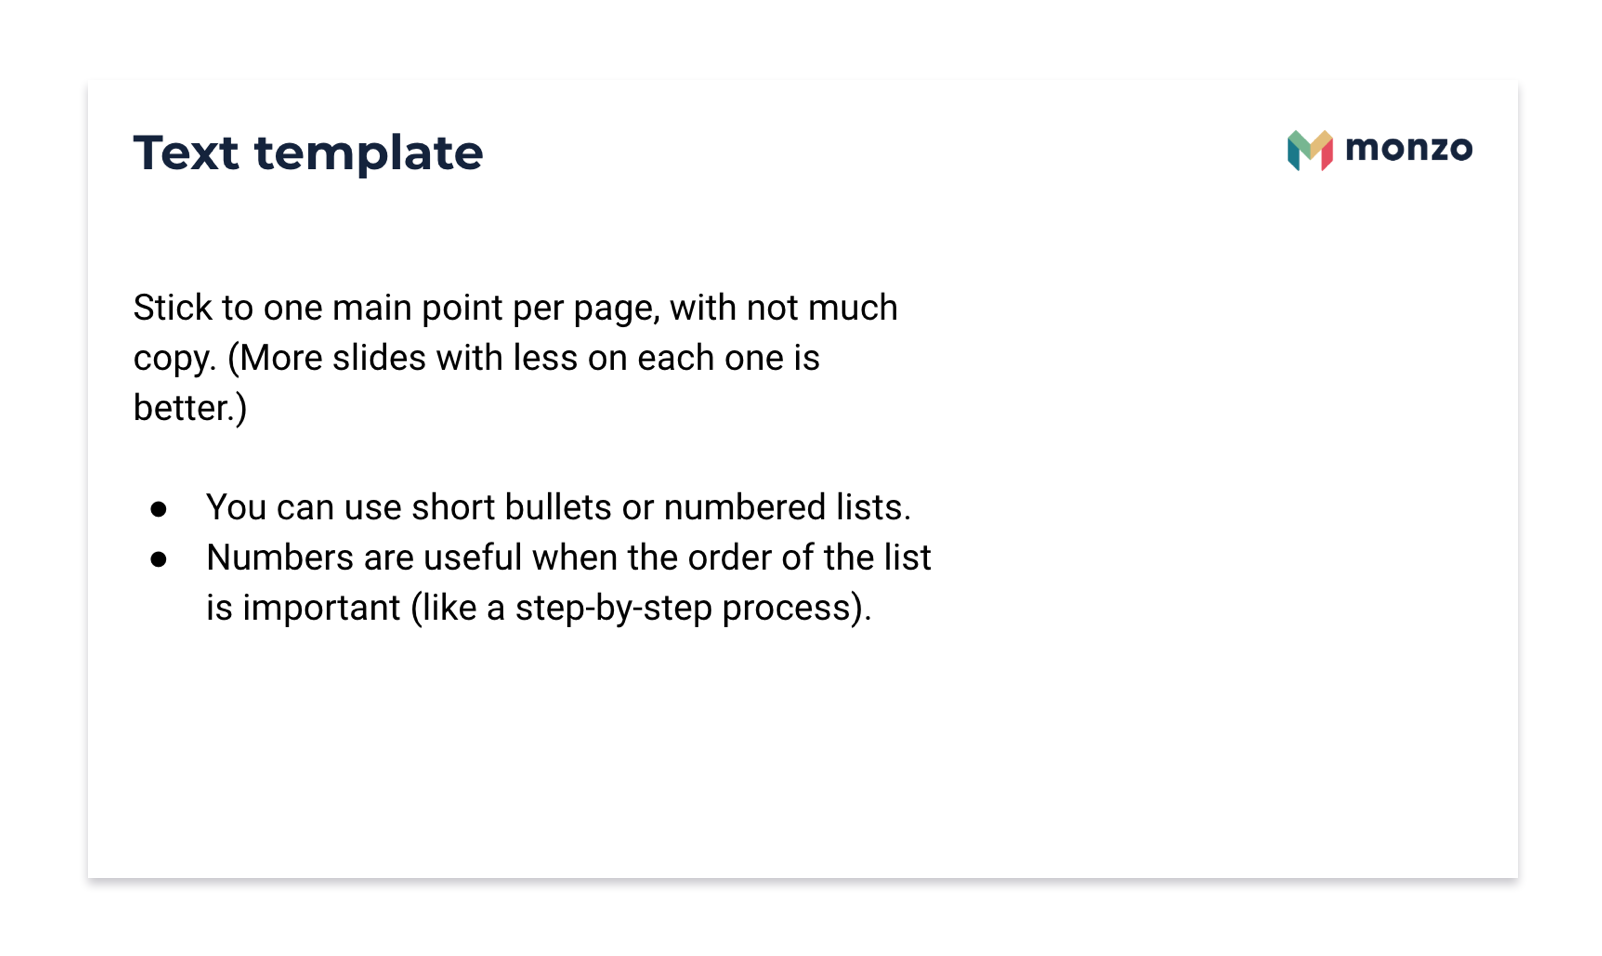 Monzo template slide. Text template. Stick to one point per page, with not much copy. (More slides with less on each one is better.)  You can use short bullets or numbered lists. Numbers are useful when the order of the list is important (like a step-by-step process).